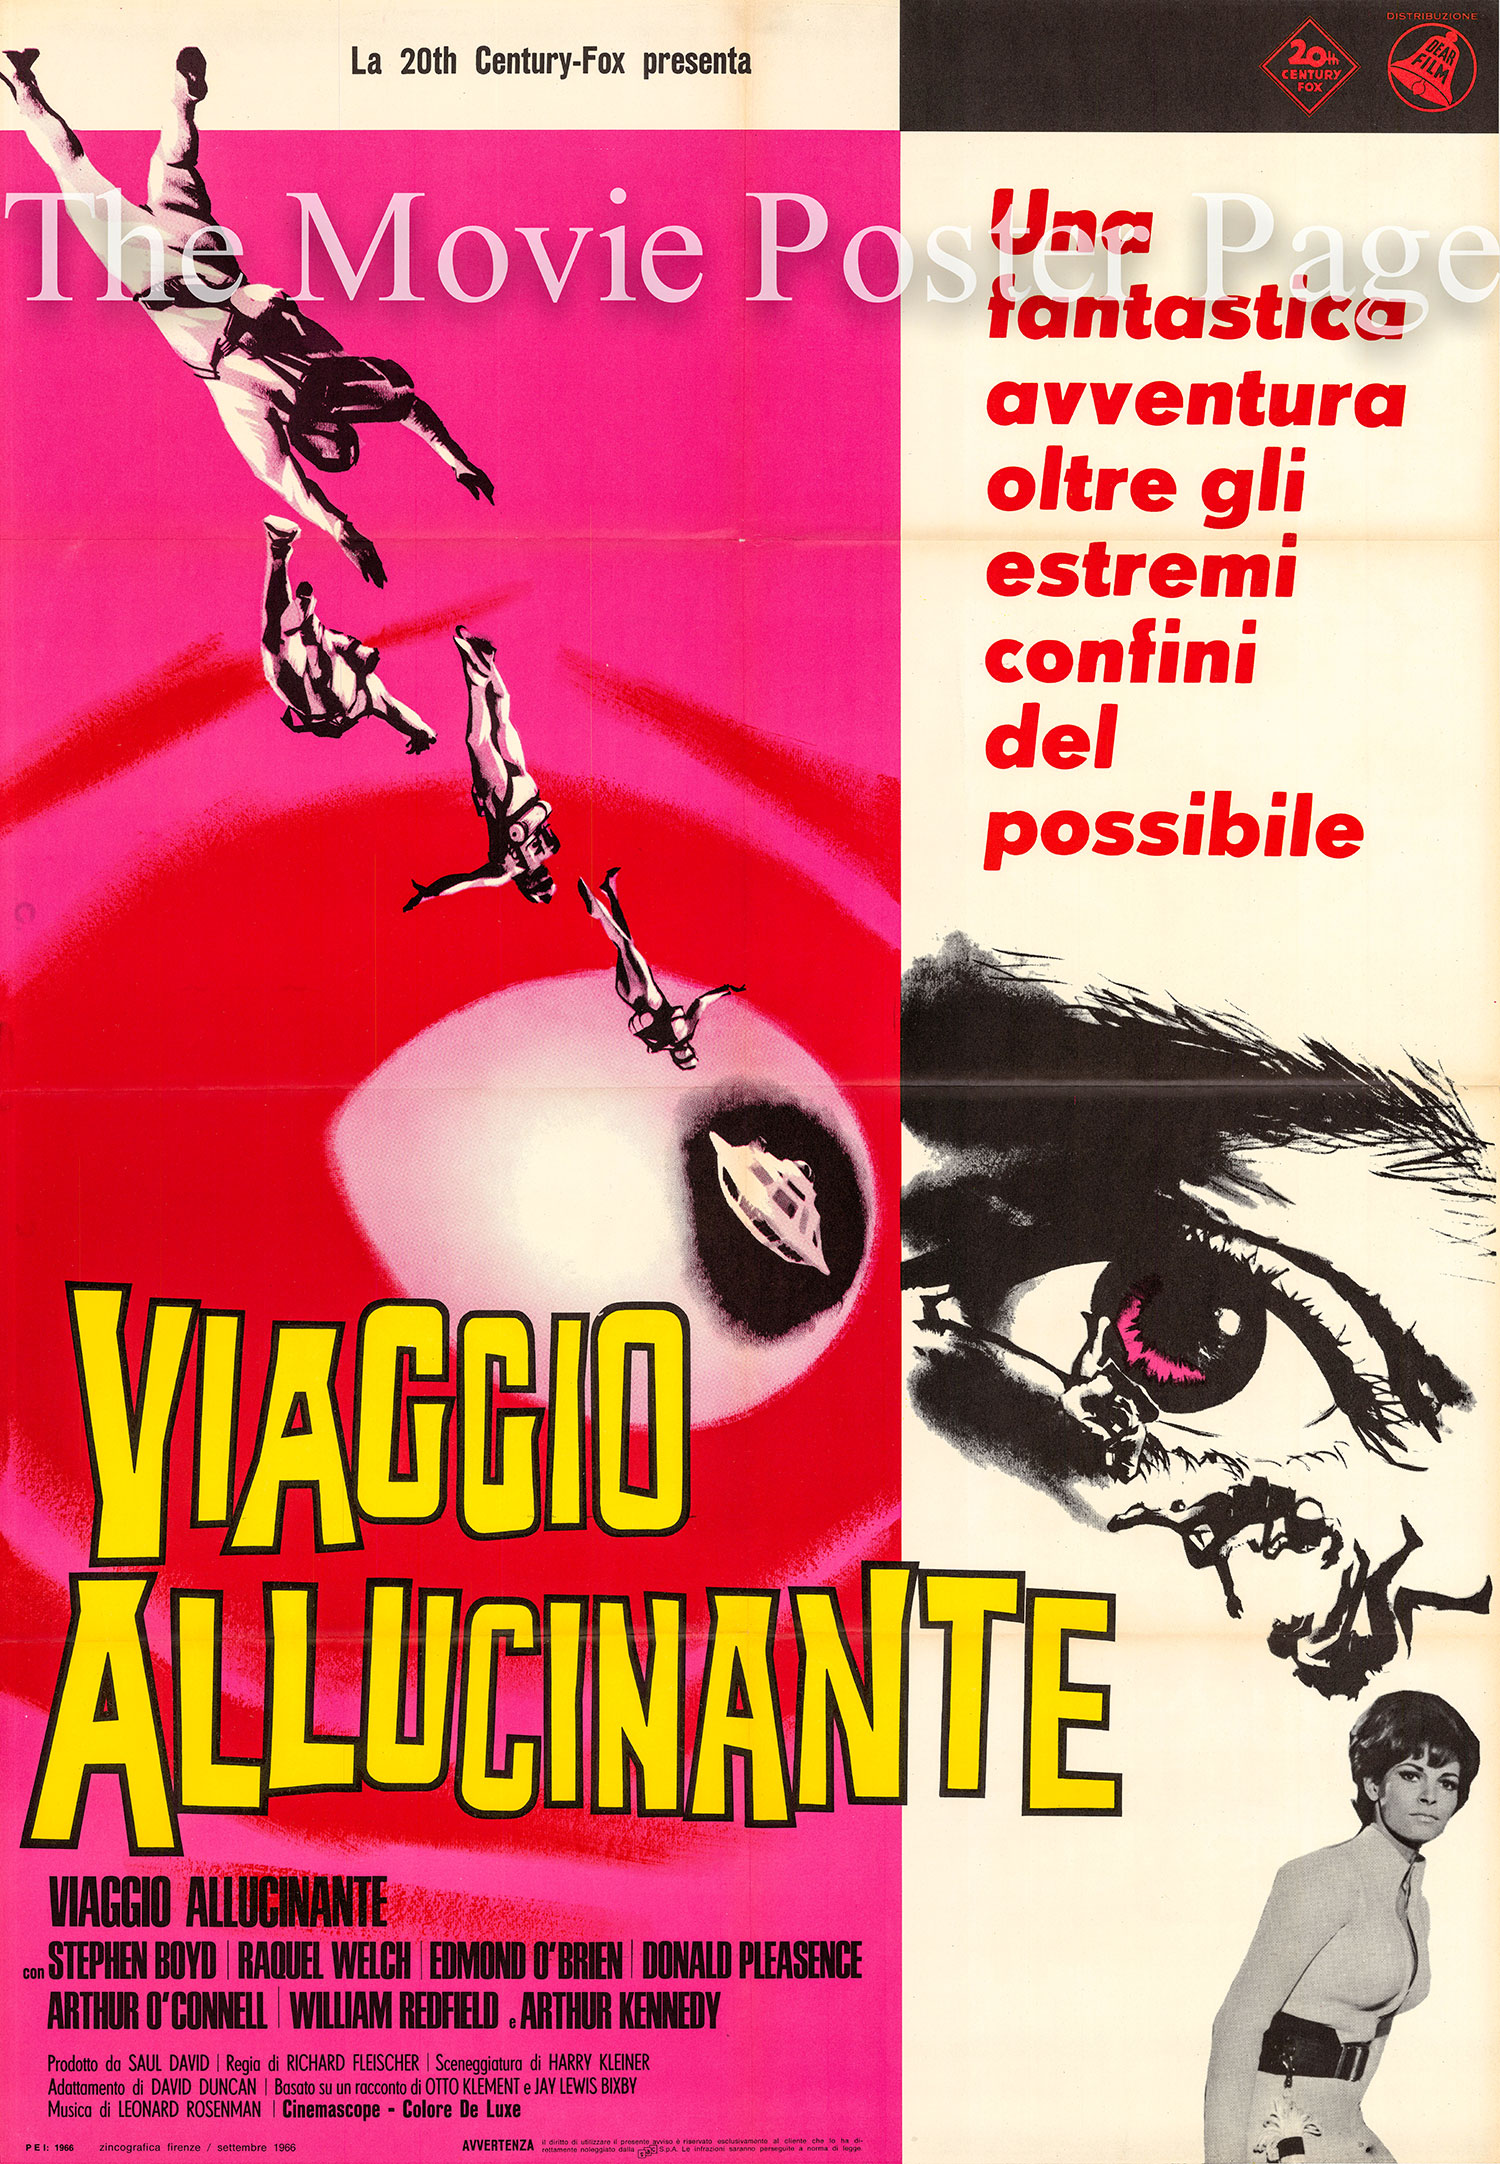 Pictured is an Italian two-sheet promotional poster for the 1966 Richard Fleischer film Fantastic Voyage starring Raquel Welch.